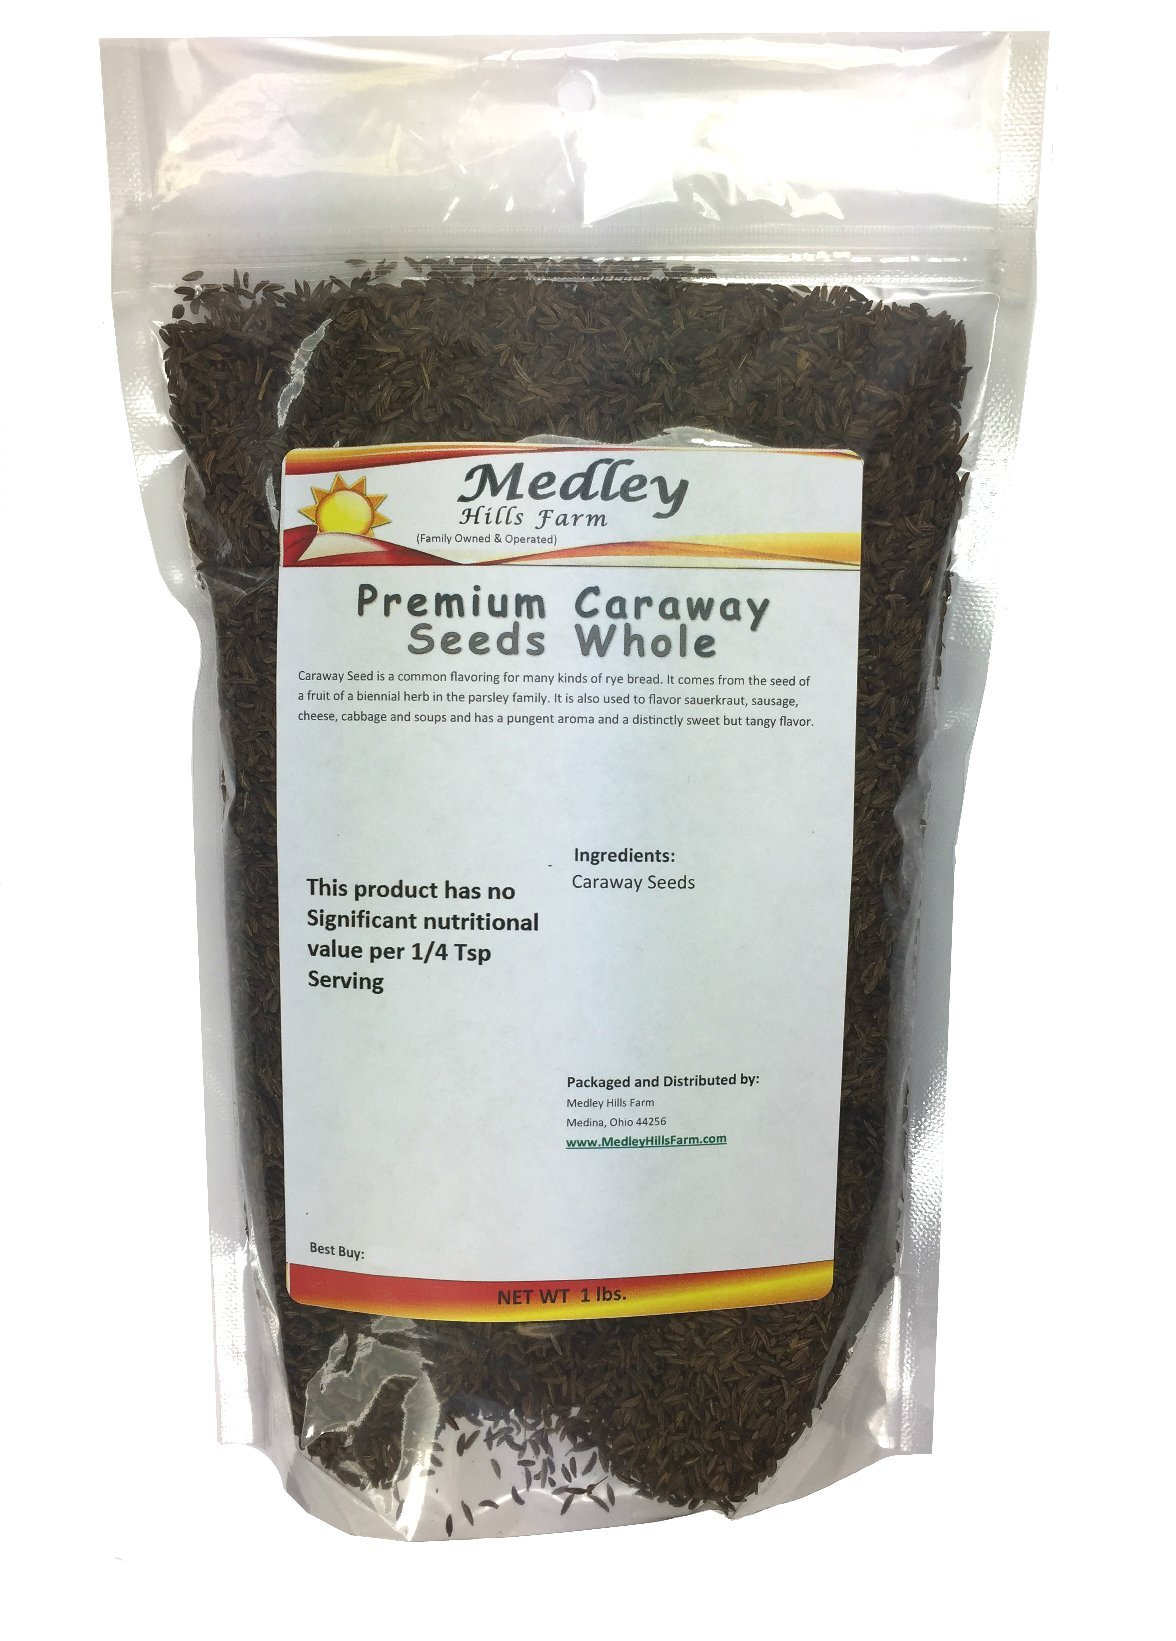 Premium Caraway Seeds Whole 1 Lb